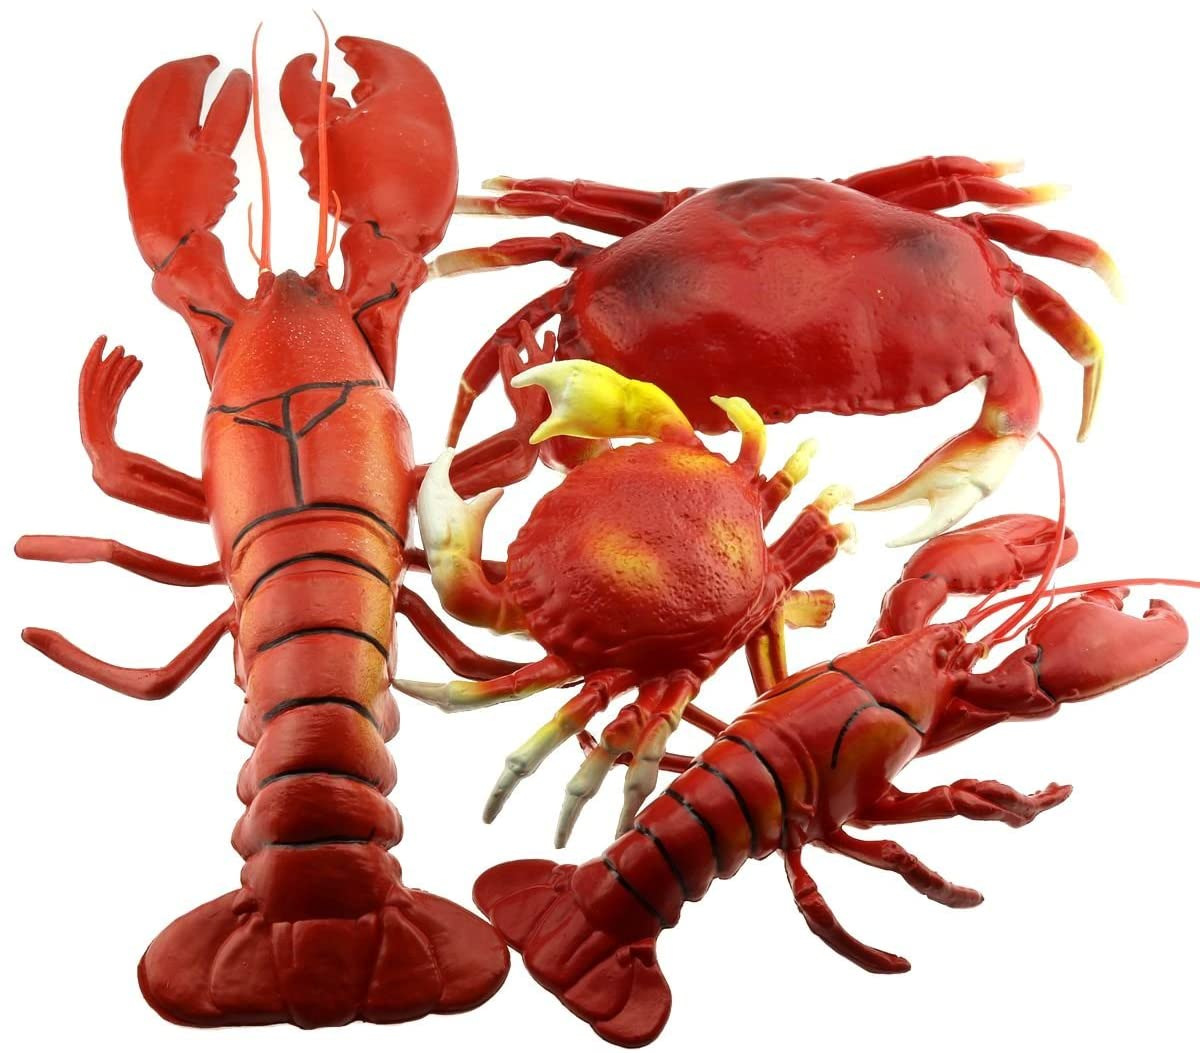 Gresorth 4 Pack Fake Large Sea Life Creatures Collection of Artificial Lobster & Crab Home Party Decoration Display Kids Play Toy